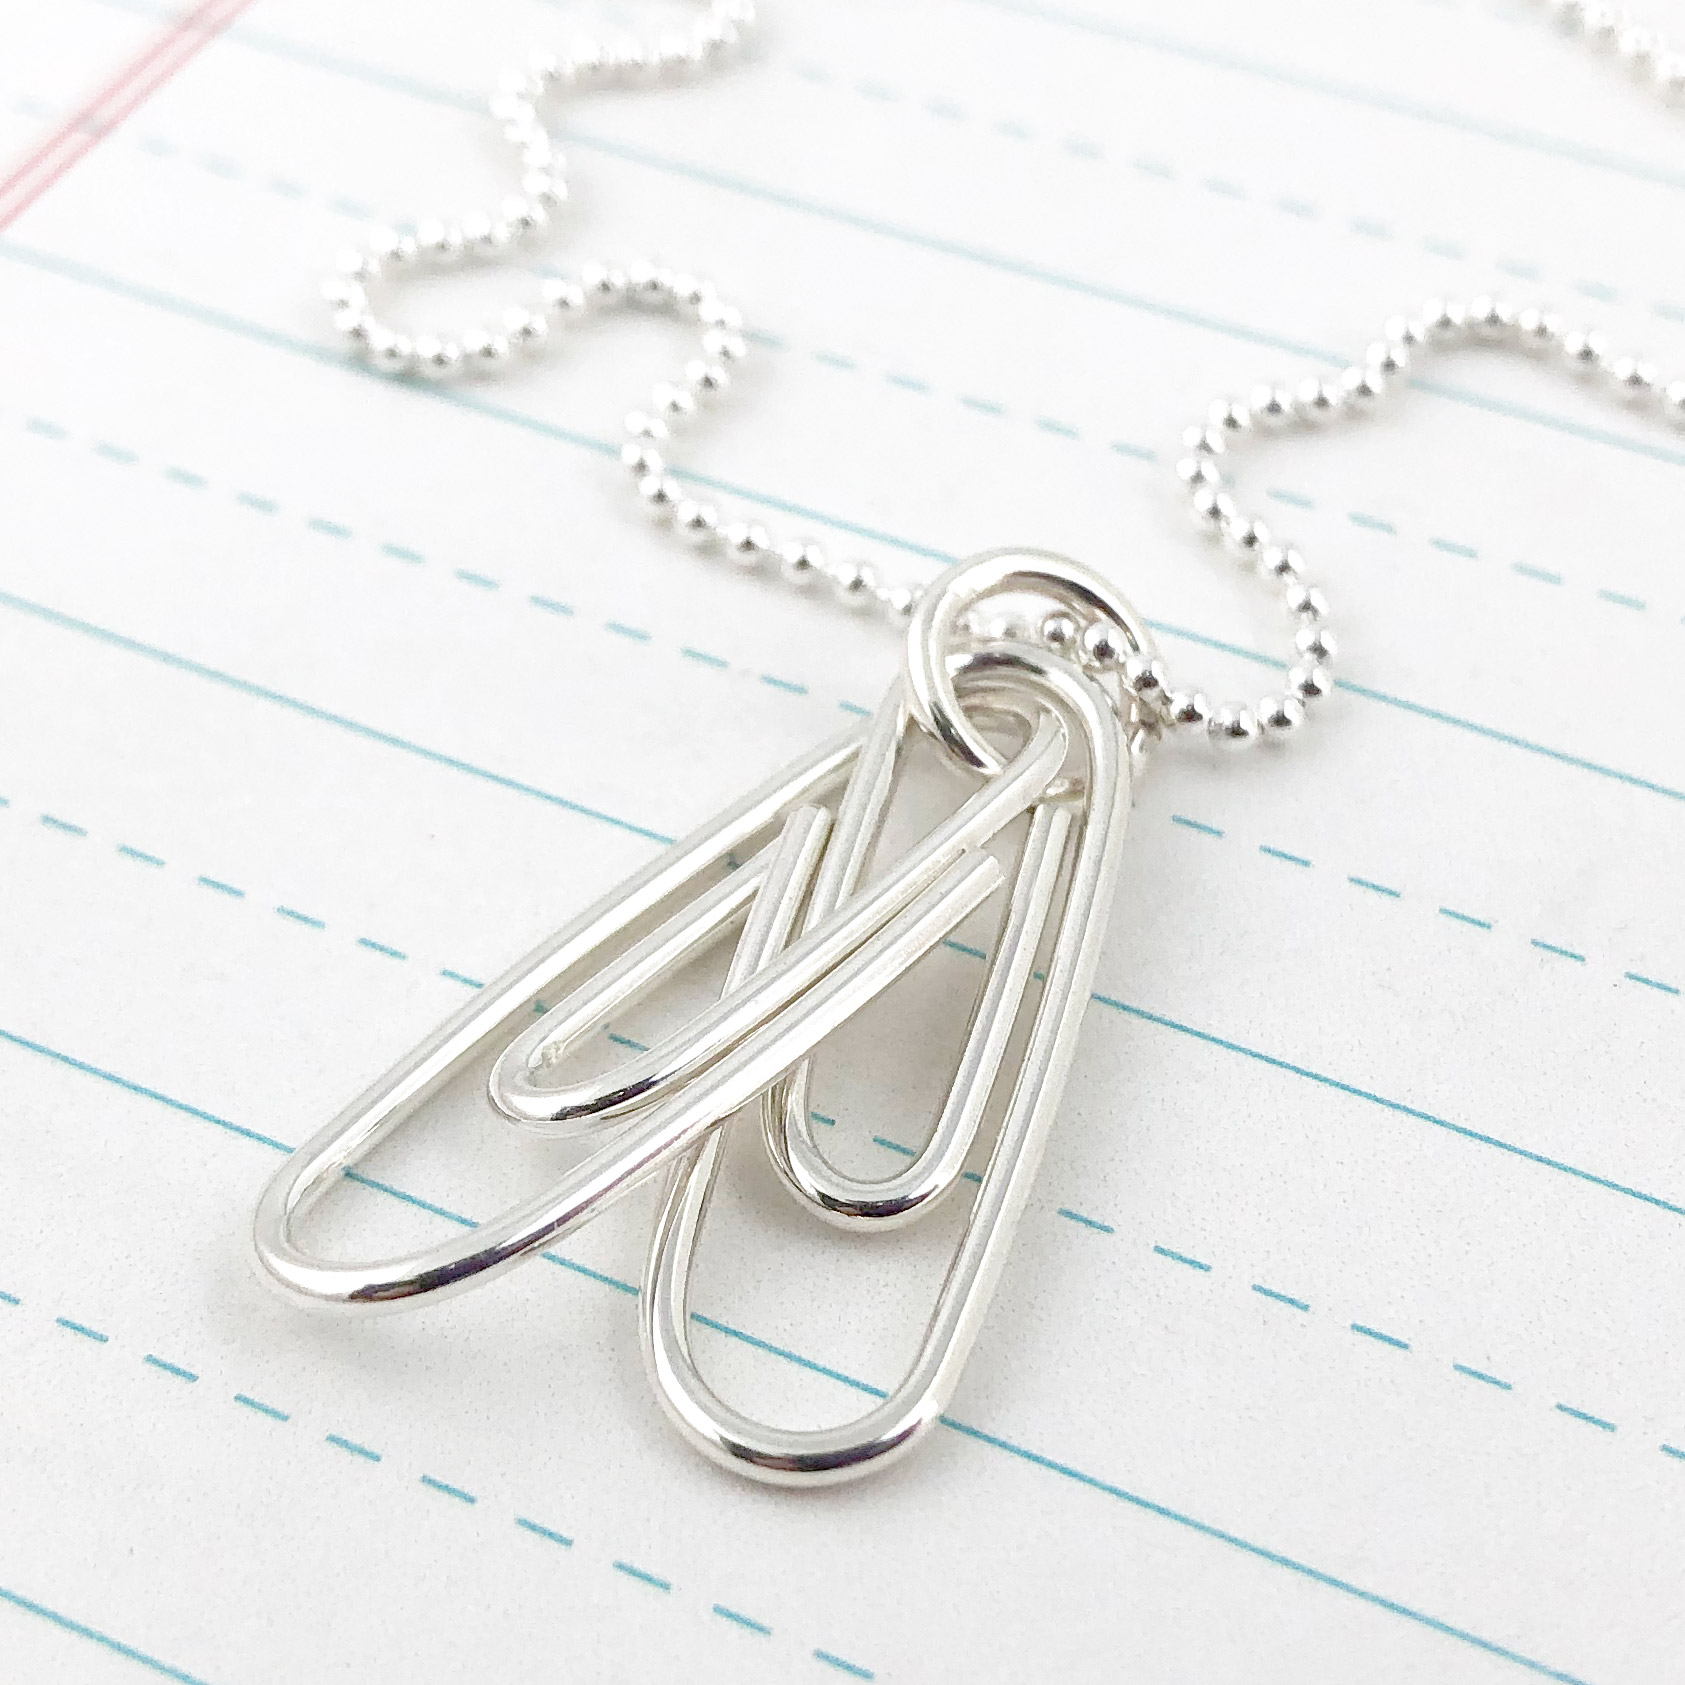 Paperclip Necklace | Two Linked Paperclips